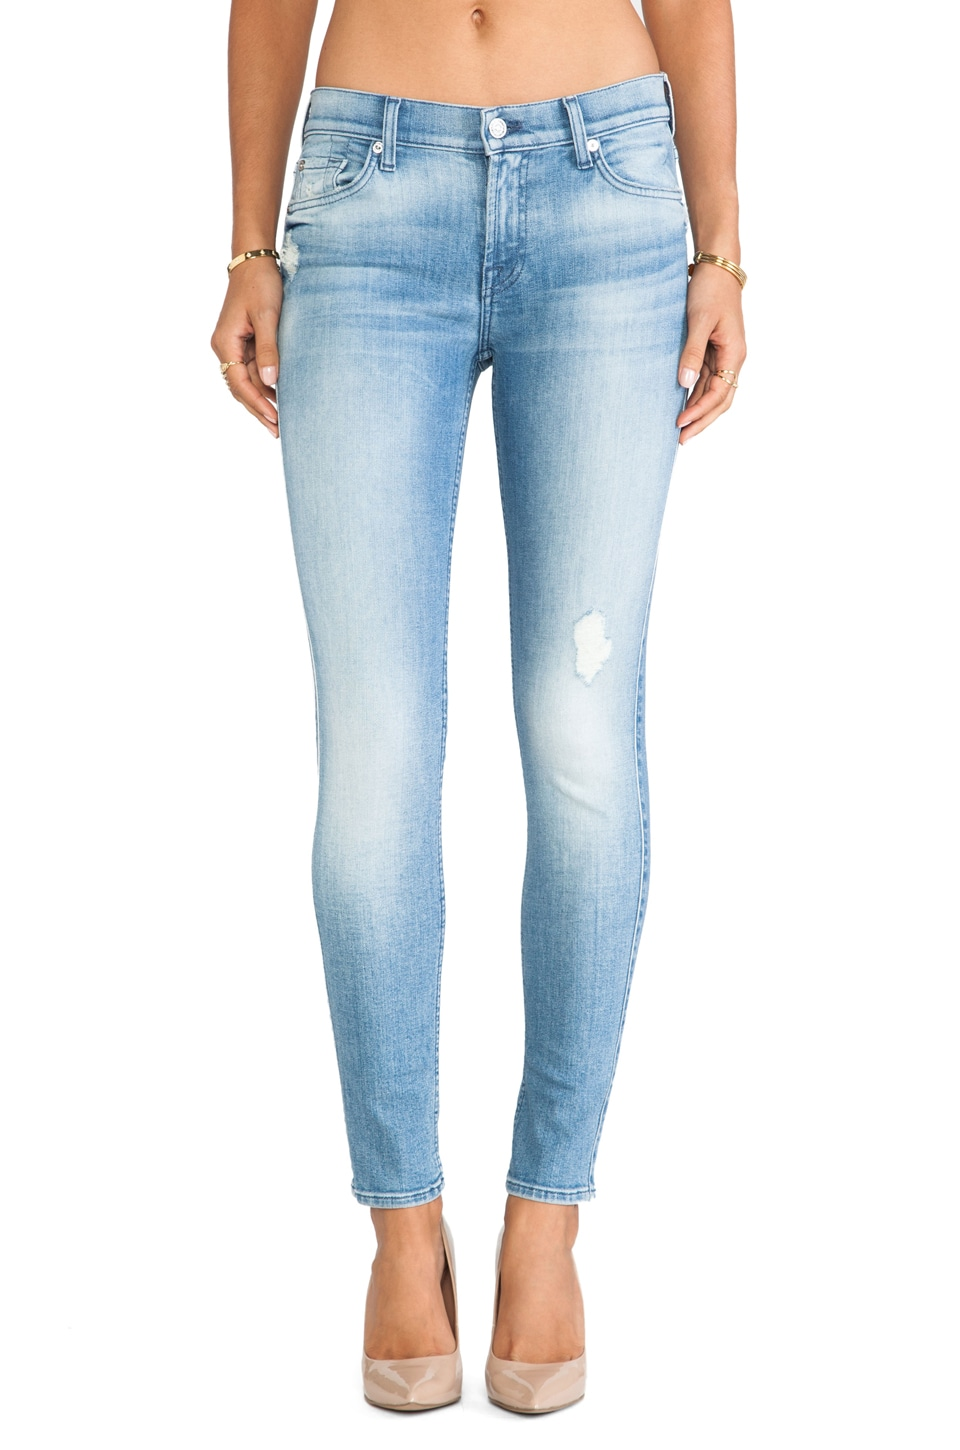 7 For All Mankind Knee Hole Ankle Skinny in Striking Light Indigo 2